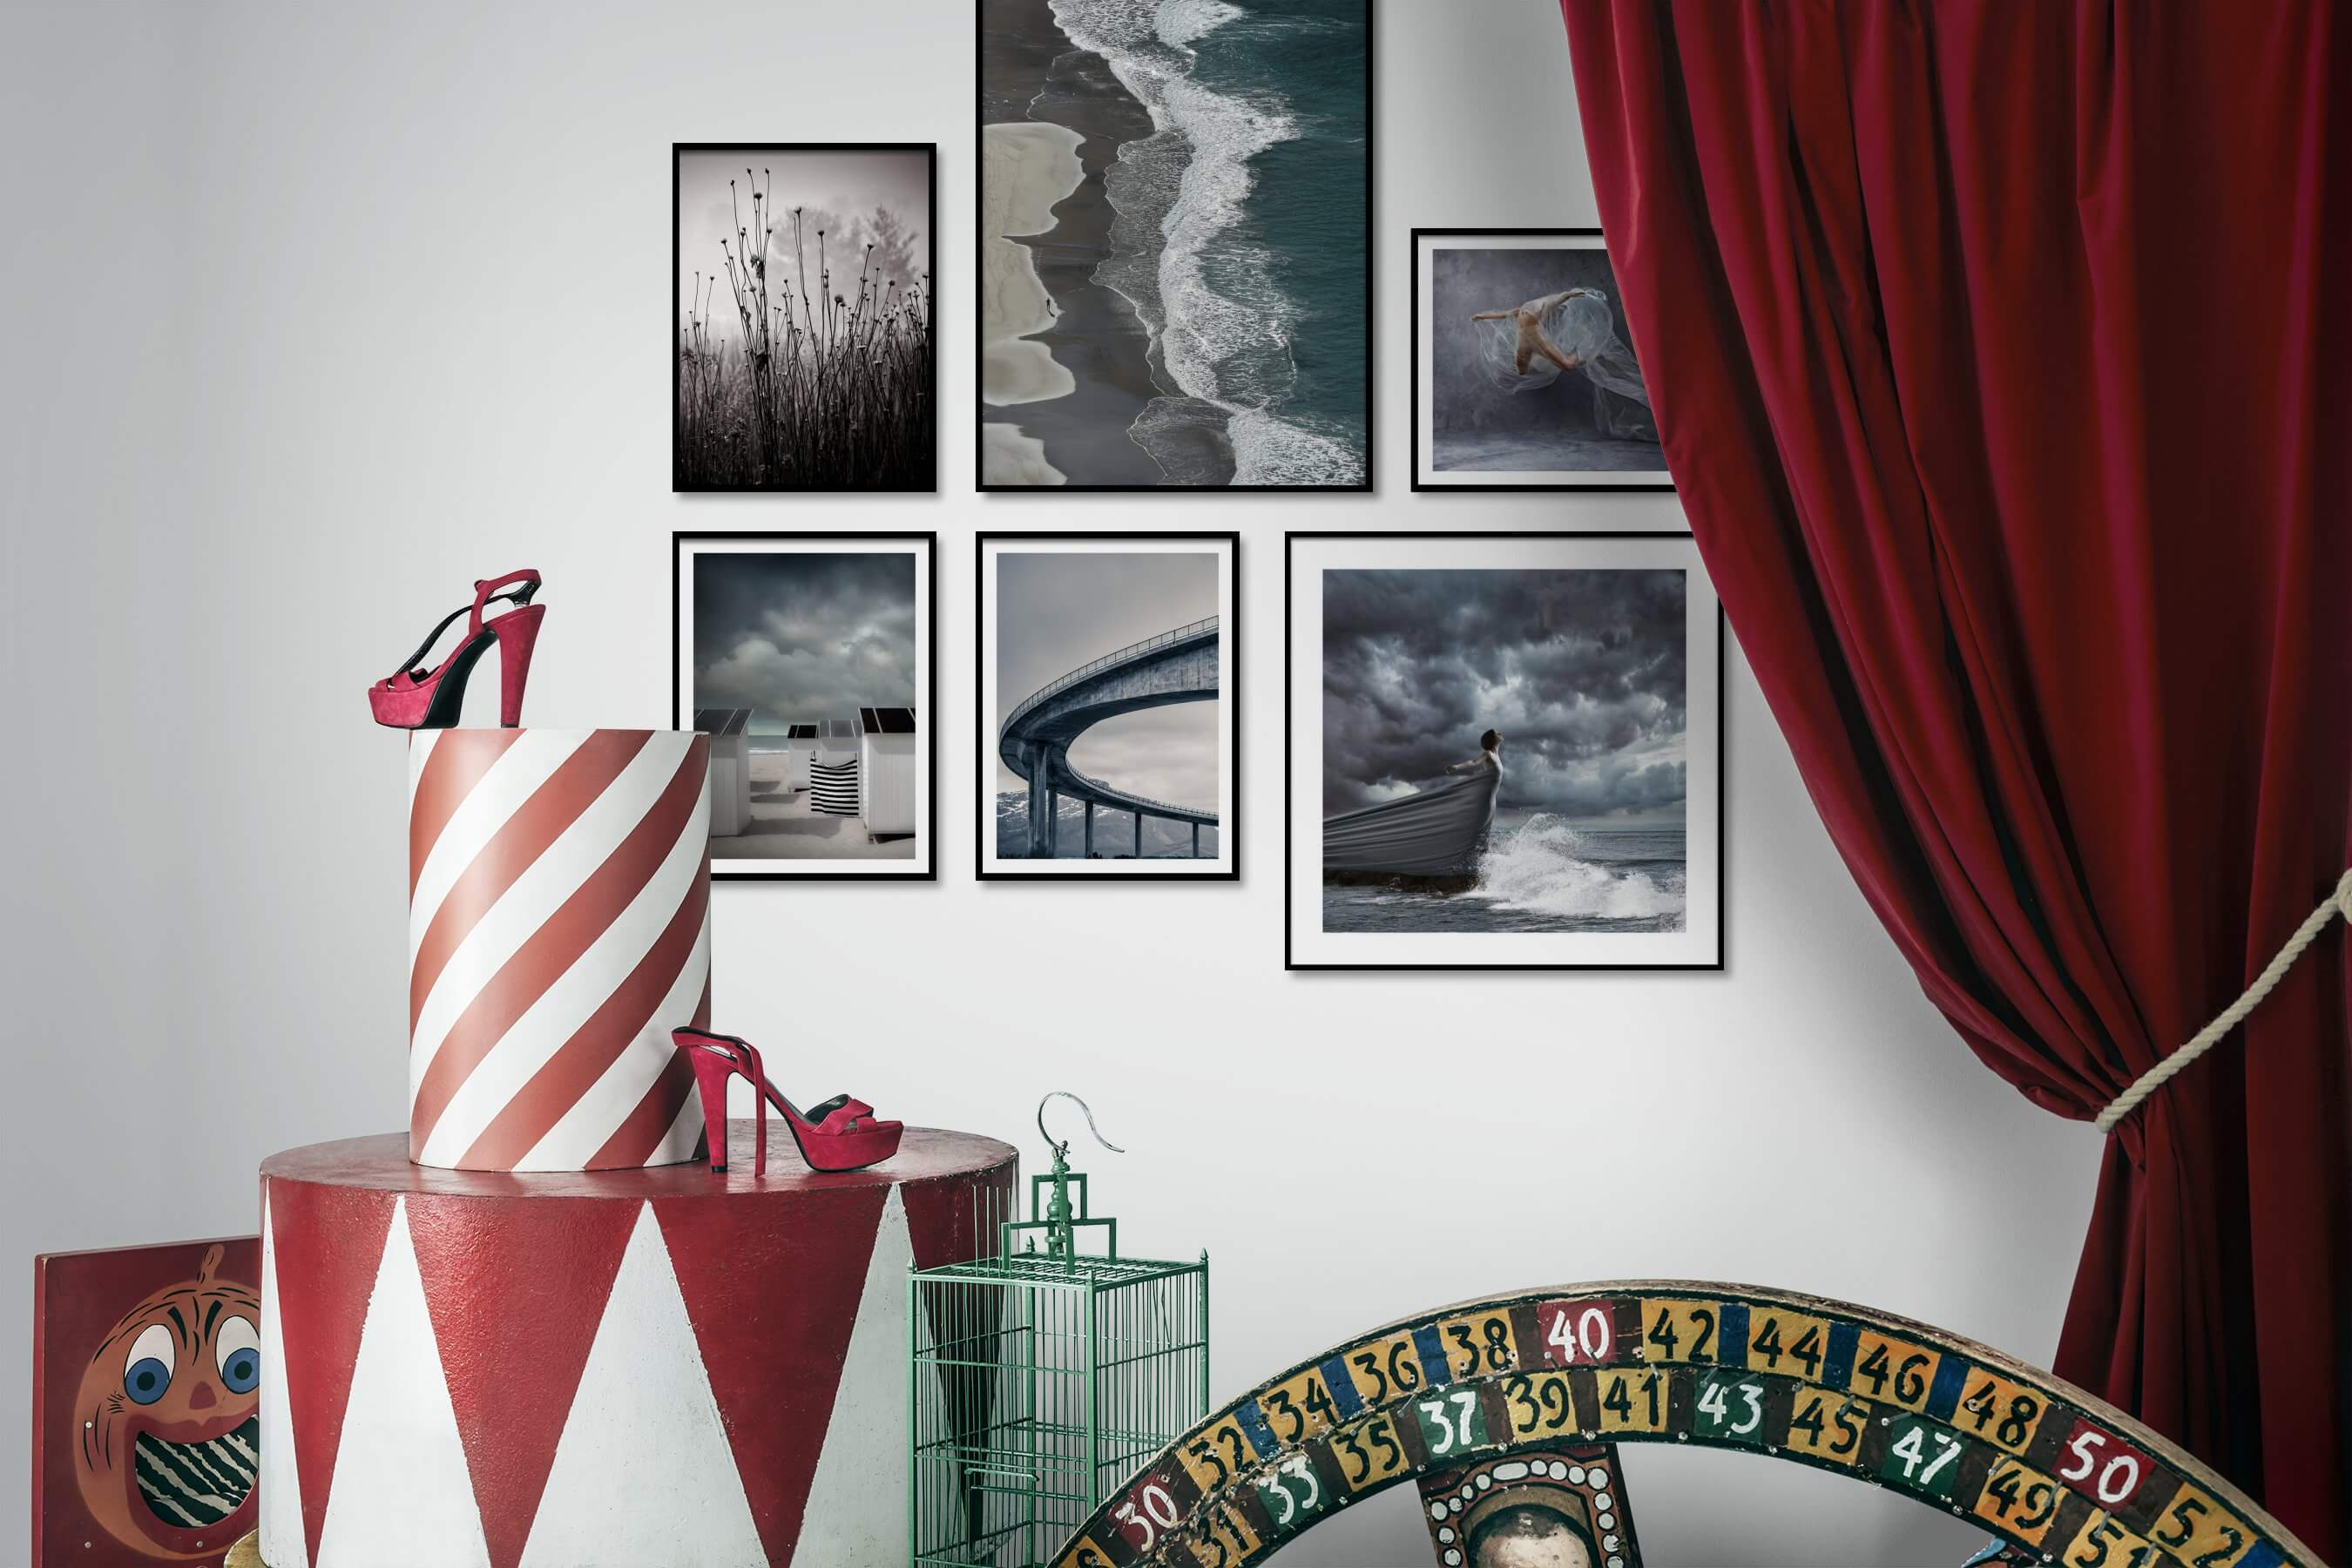 Gallery wall idea with six framed pictures arranged on a wall depicting Black & White, Nature, Flowers & Plants, For the Moderate, Beach & Water, Artsy, and Fashion & Beauty